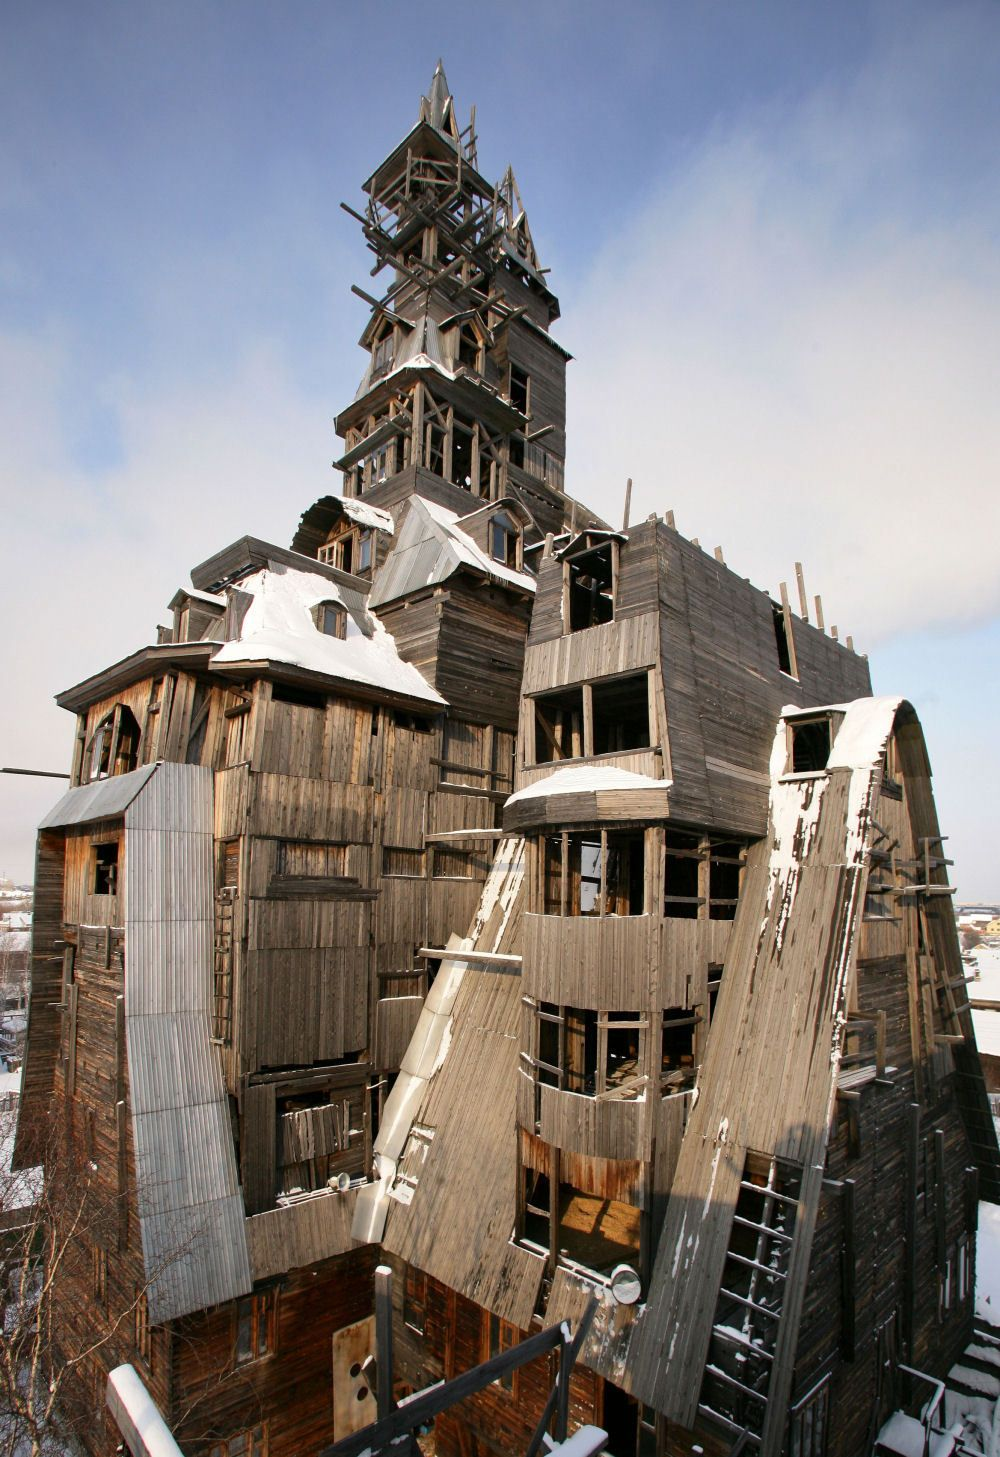 The tallest wooden house built in Canada